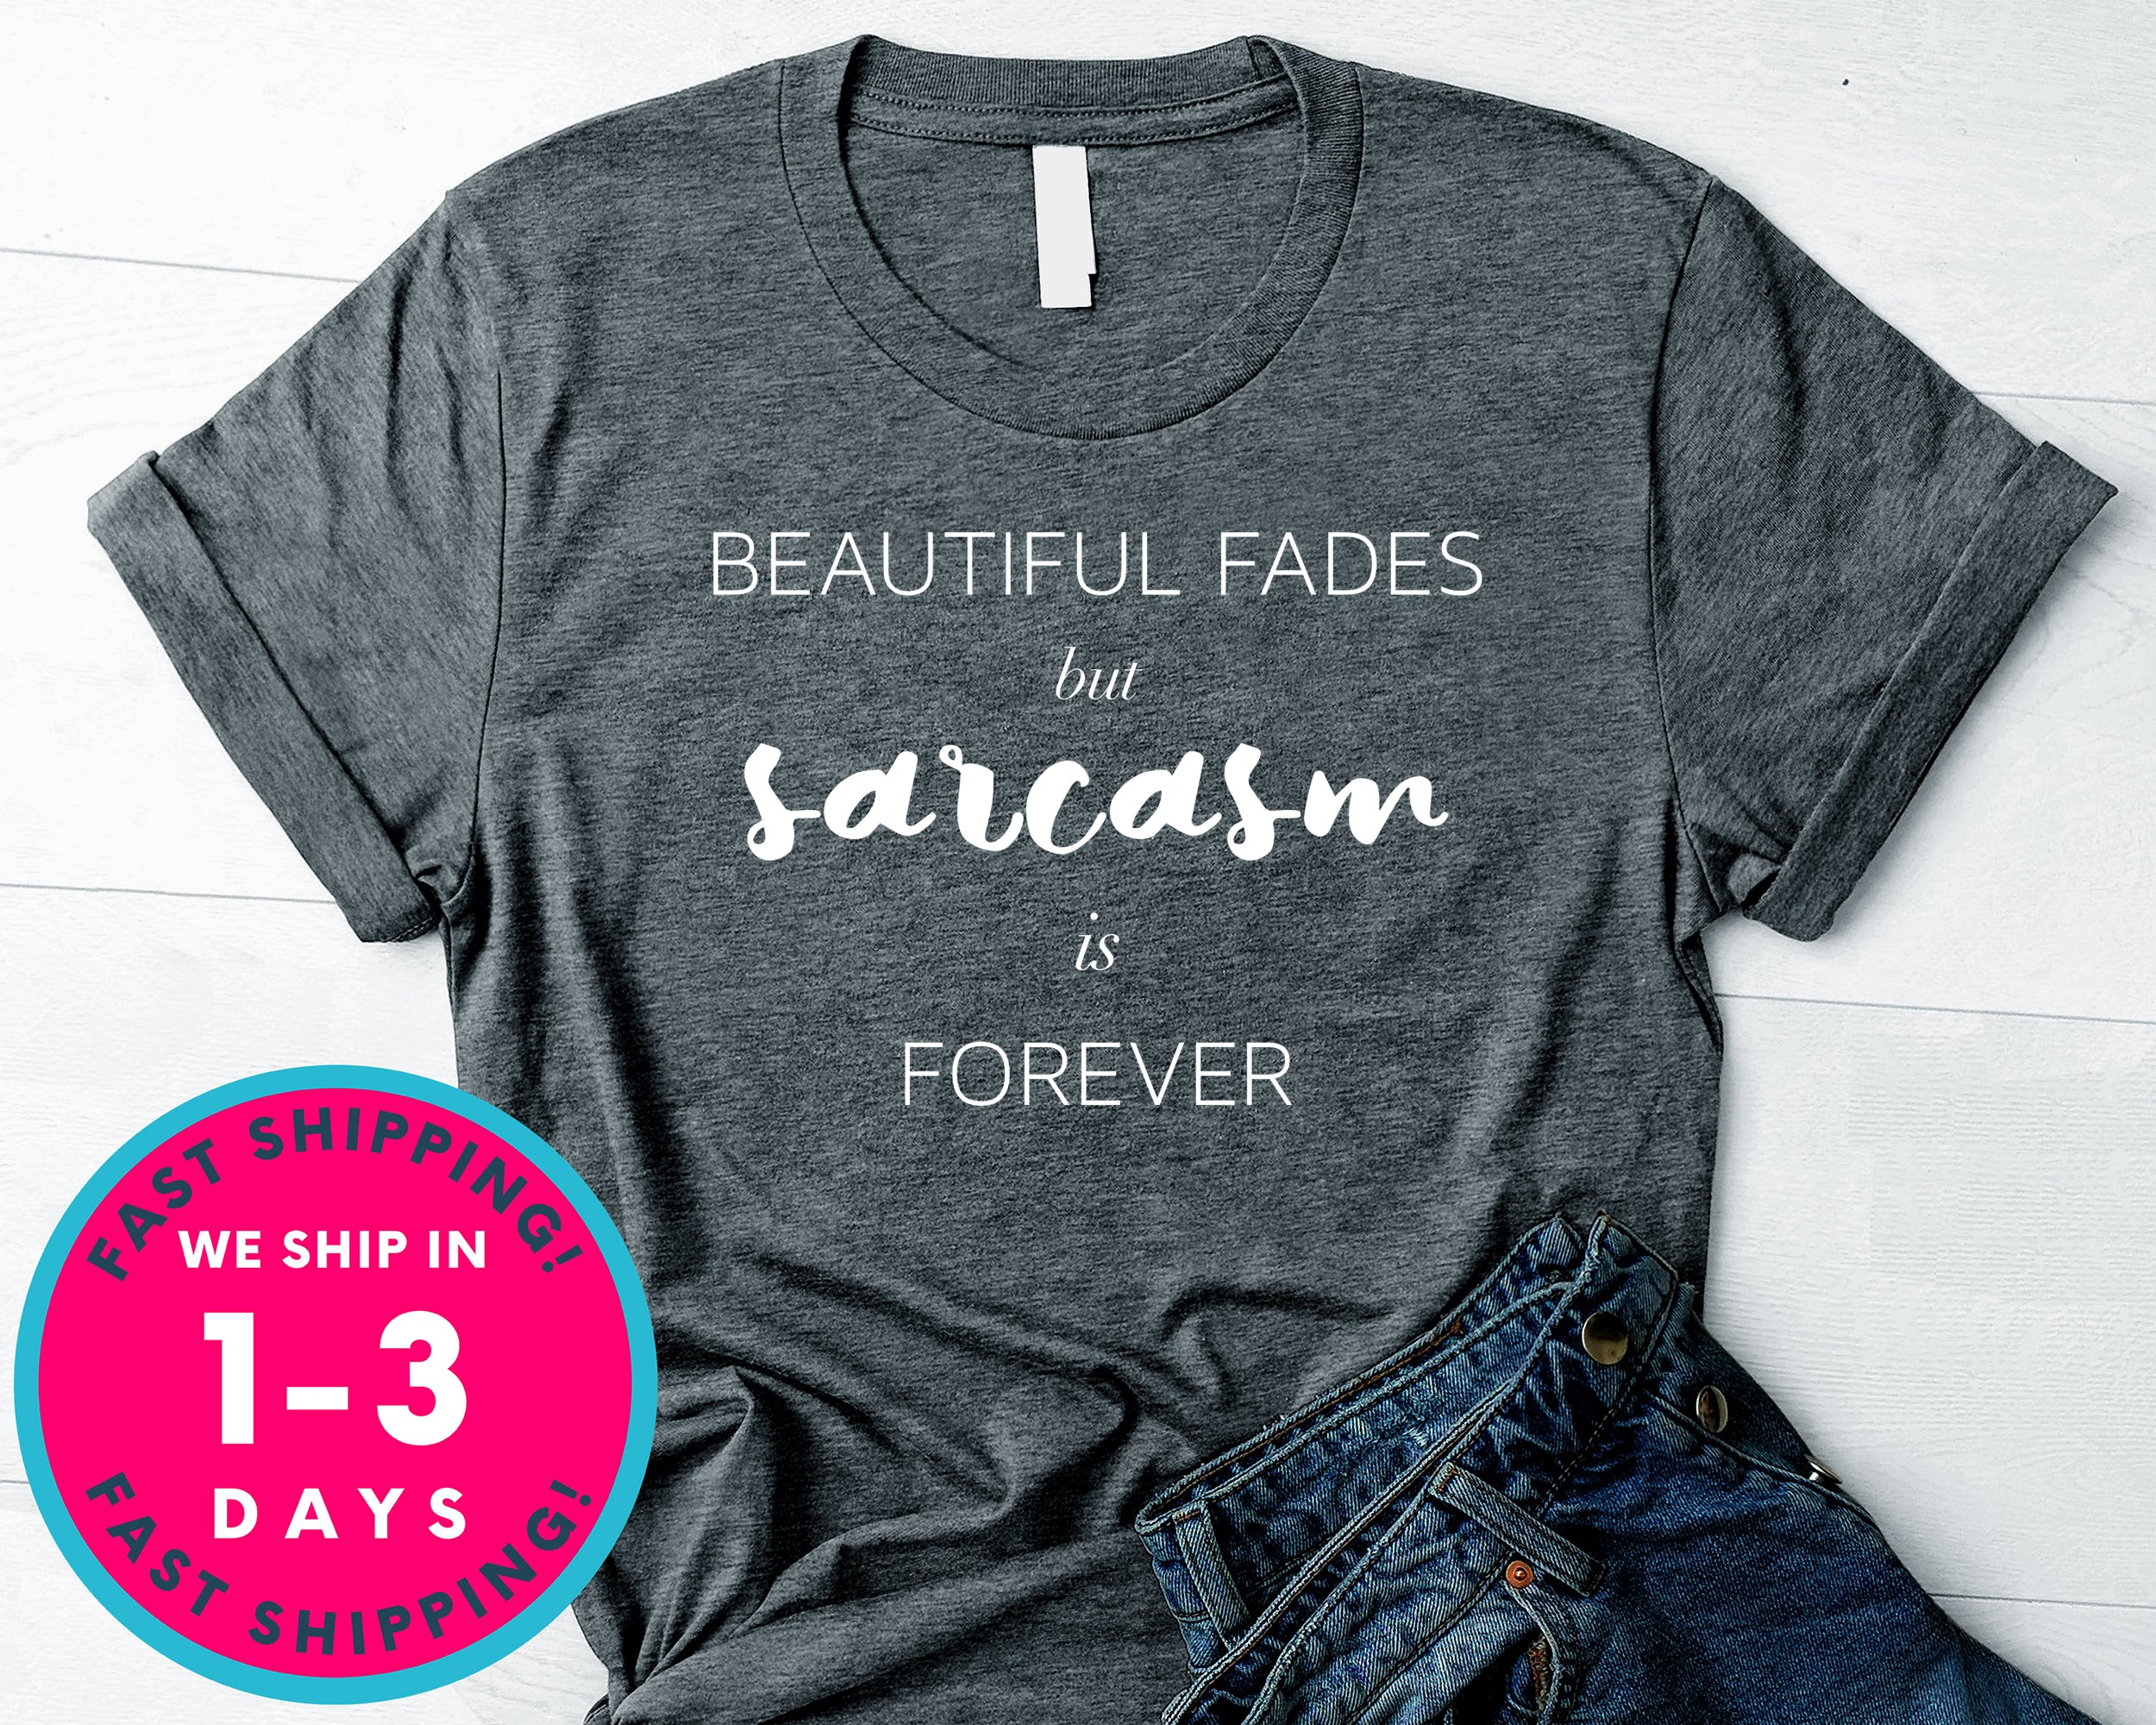 Beauty Fades But Sarcasm Is Forever T-Shirt - Funny Humor Shirt